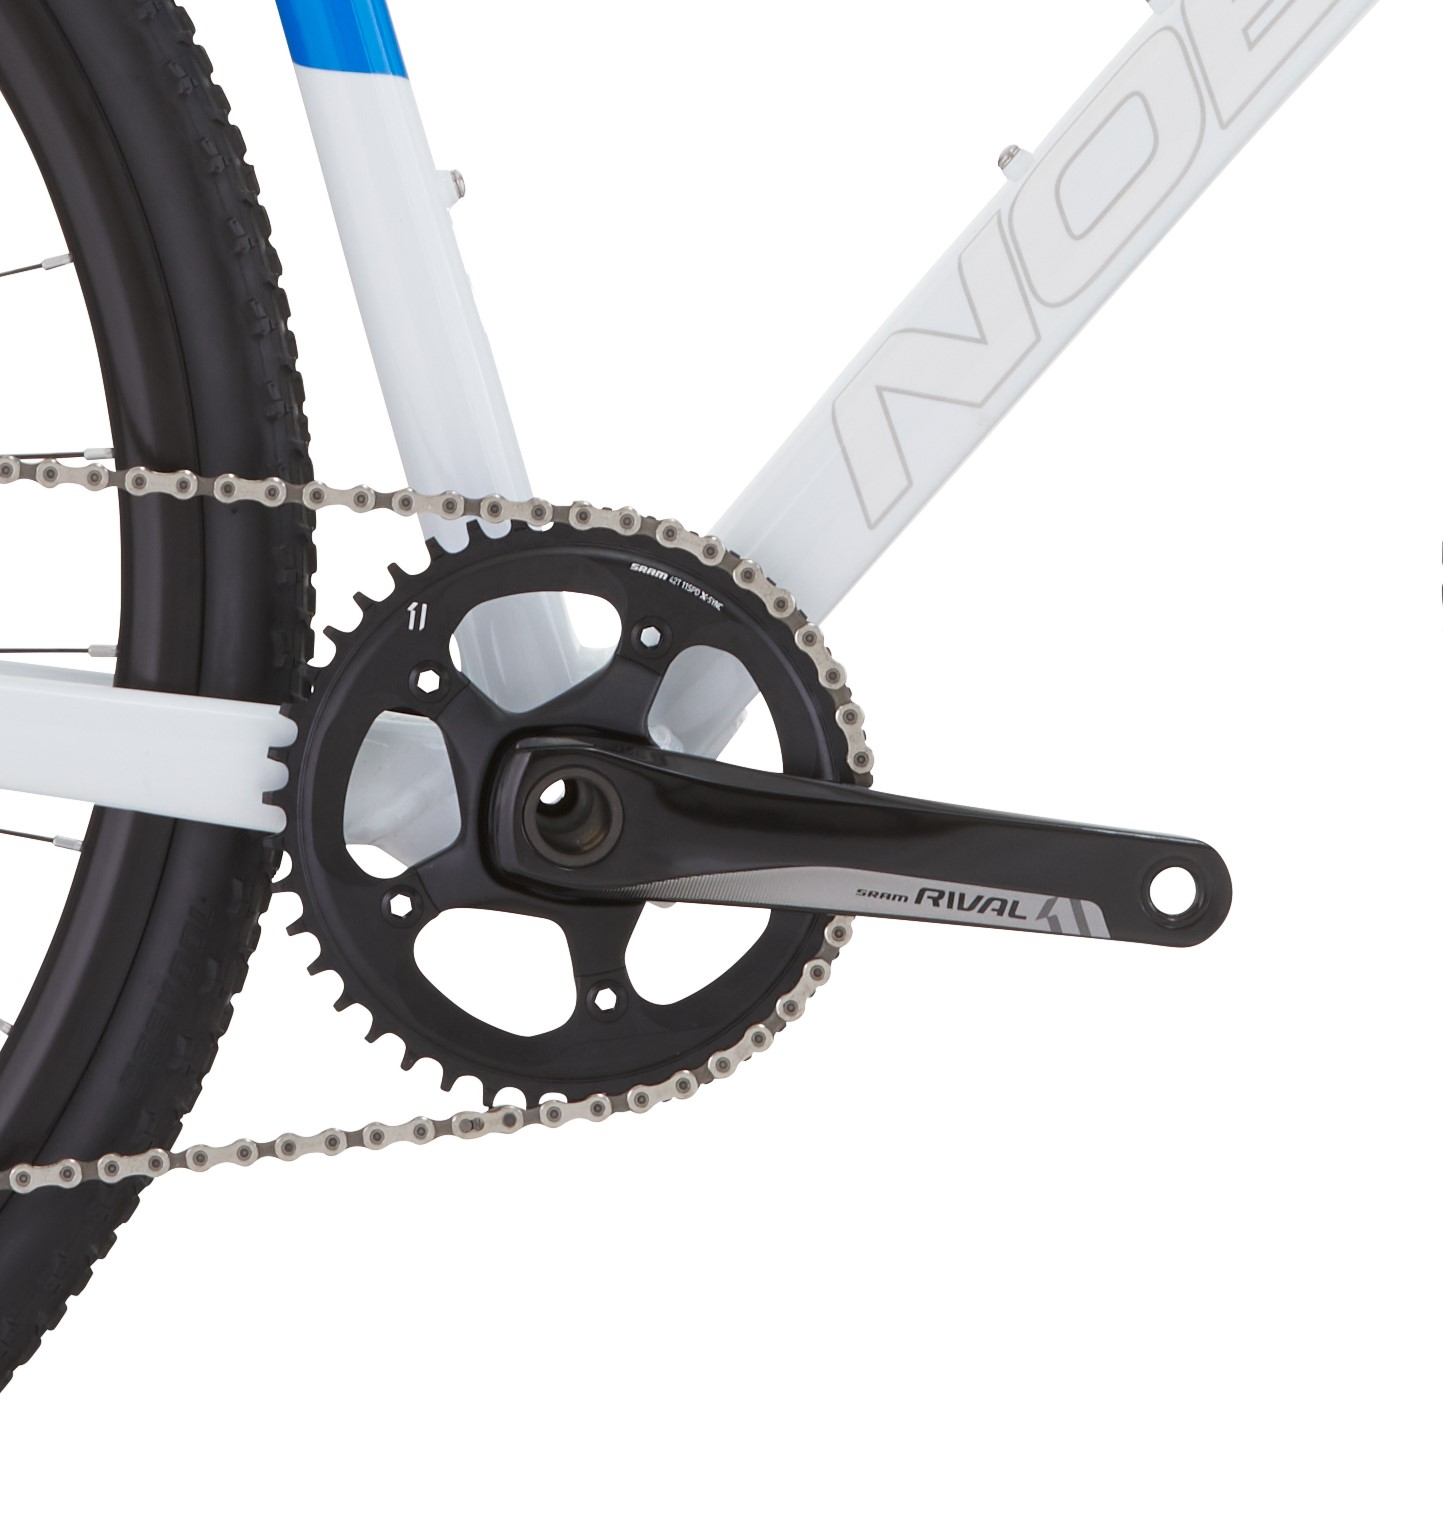 CX3 SRAM Rival 1 cranks